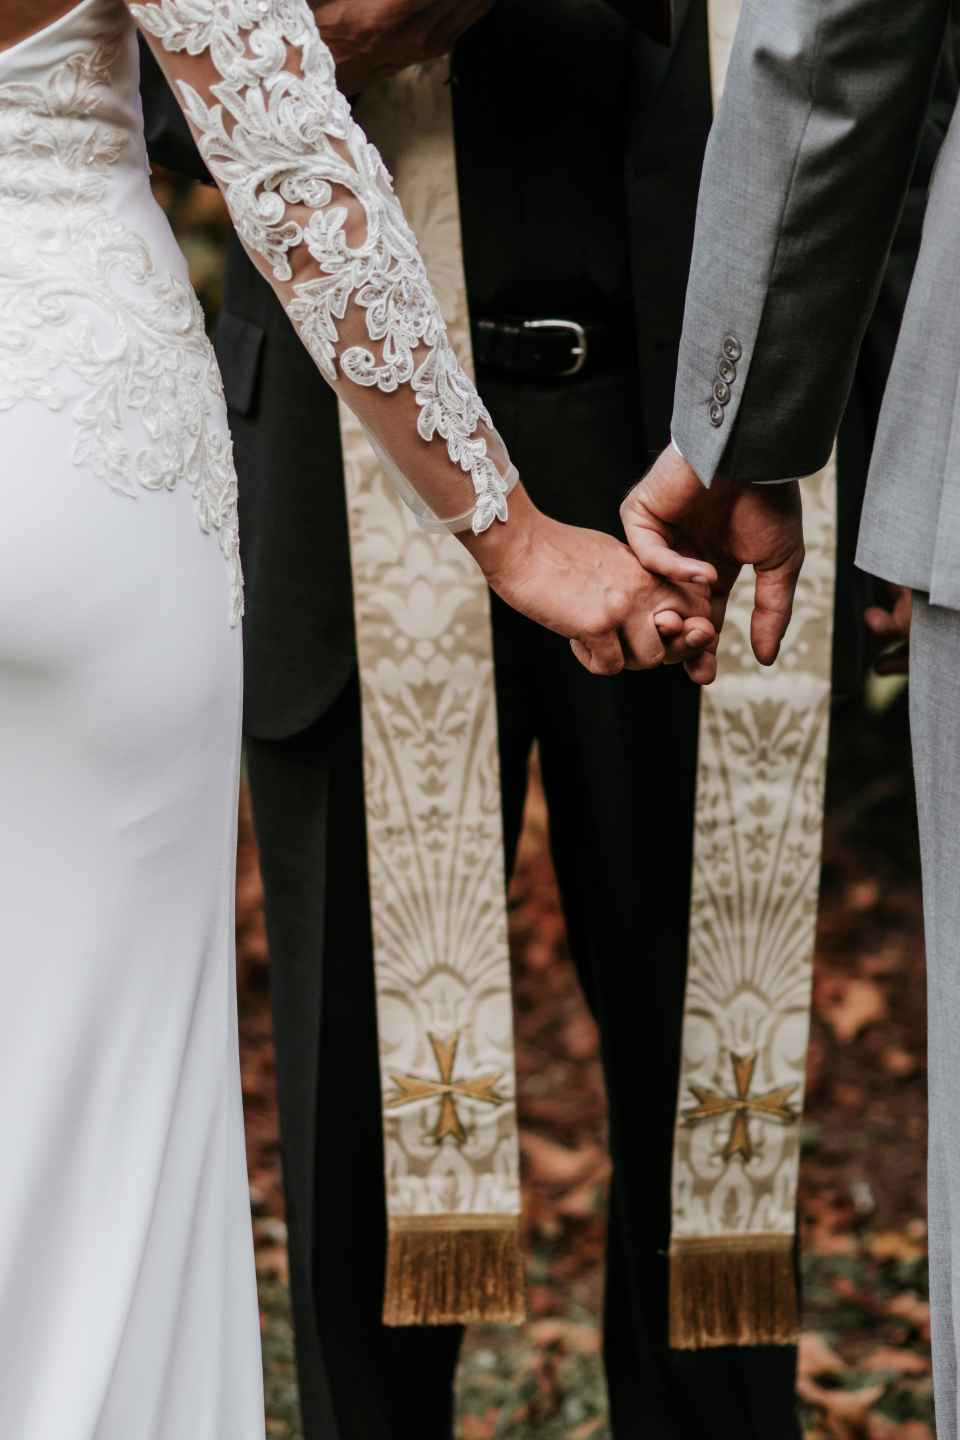 The Liturgy of the Word consists of a bunch of readings that are recited by the family members of the couple or the priest himself